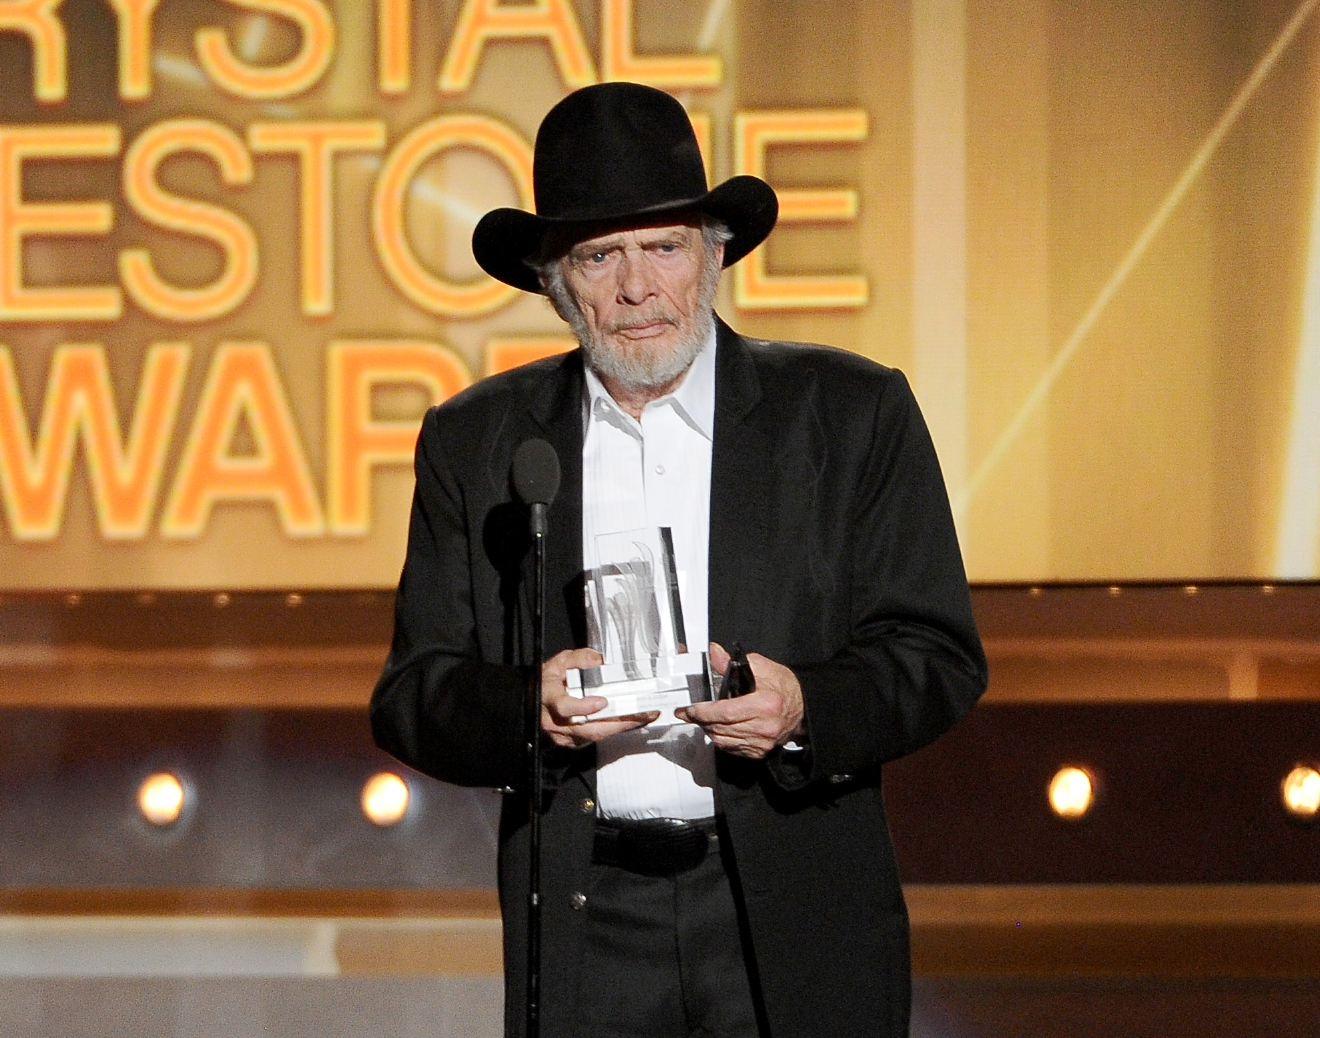 FILE - In this April 6, 2014 file photo, Merle Haggard accepts the crystal milestone award at the 49th annual Academy of Country Music Awards in Las Vegas.Haggard died of pneumonia, Wednesday, April 6, 2016, in Palo Cedro, Calif. He was 79. (Photo by Chris Pizzello/Invision/AP, File)